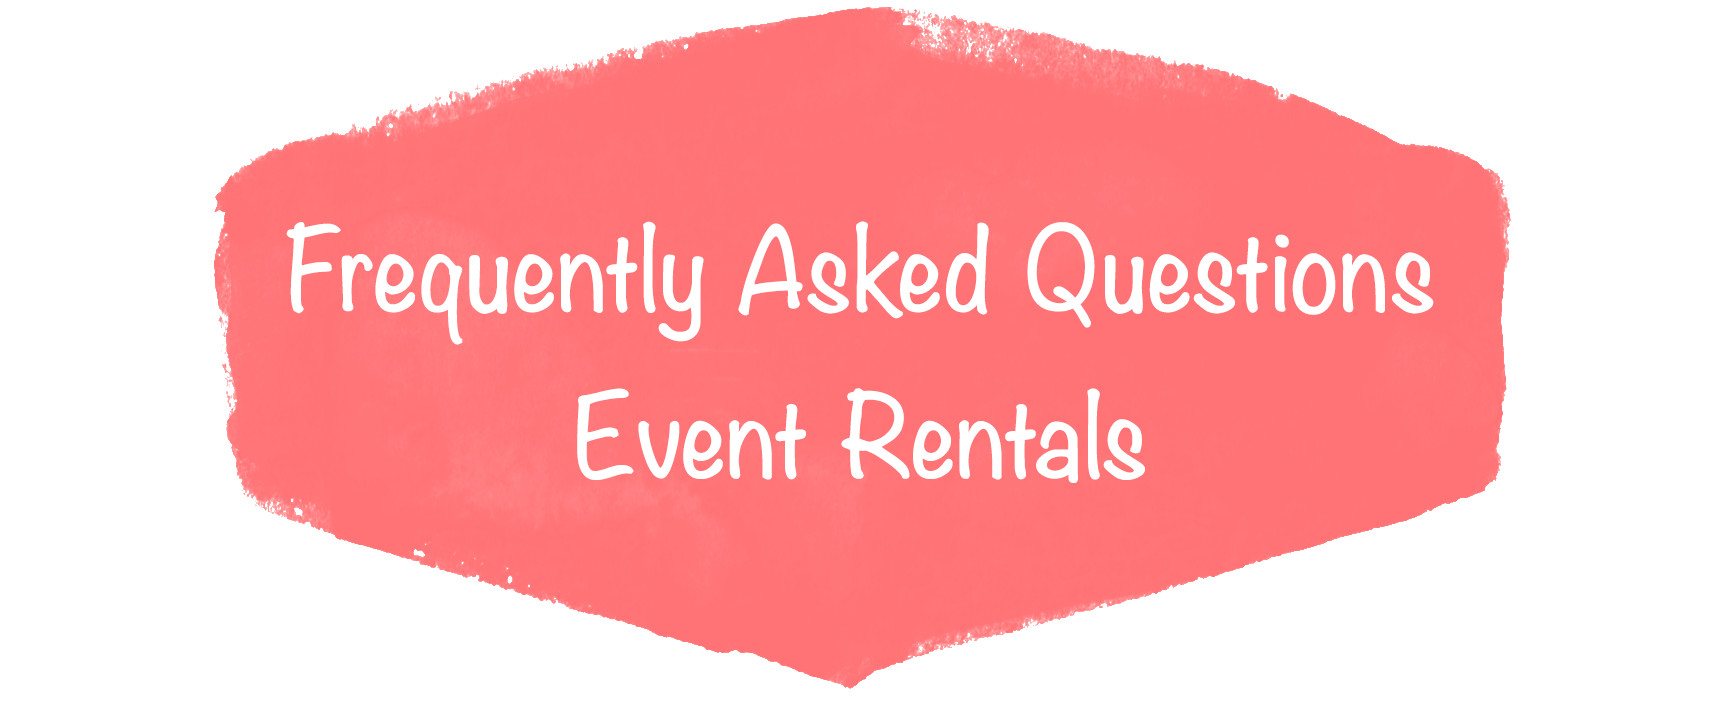 Frequently Asked Questions event rental .png